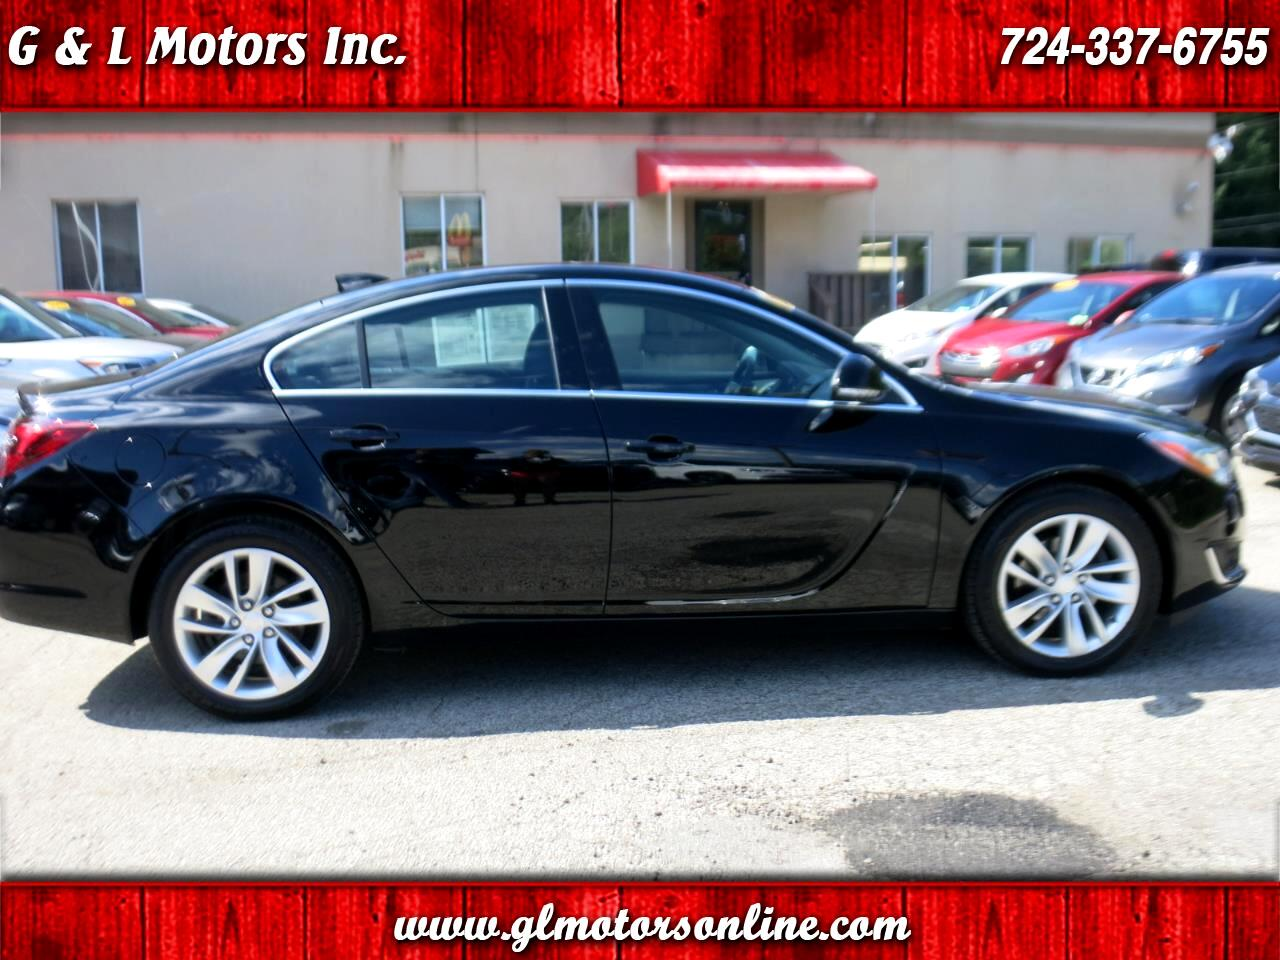 2016 Buick Regal 4dr Sdn Turbo AWD